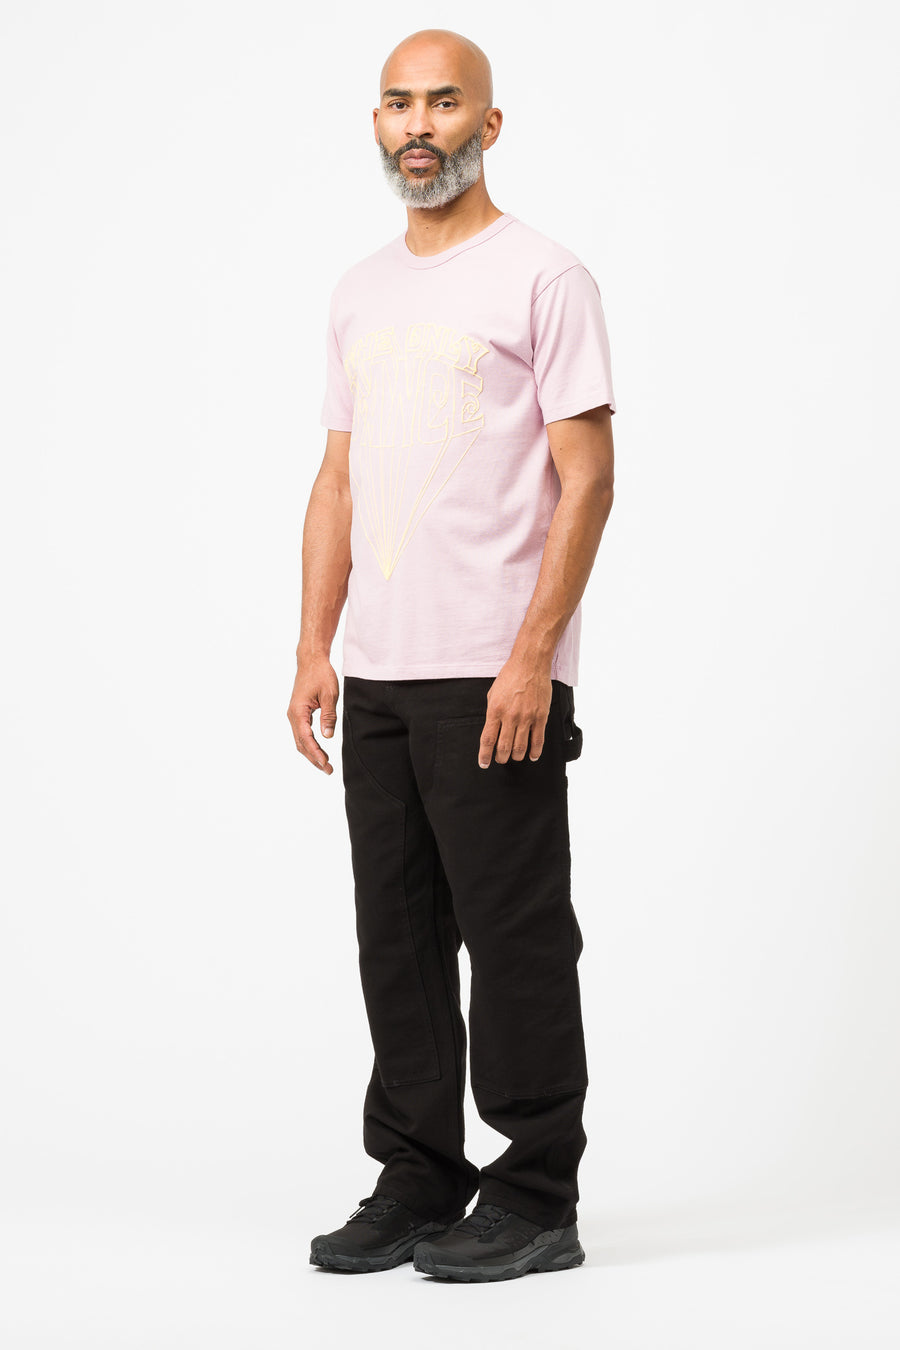 Bianca Chandon Dance S/S T-Shirt in Pink - Notre